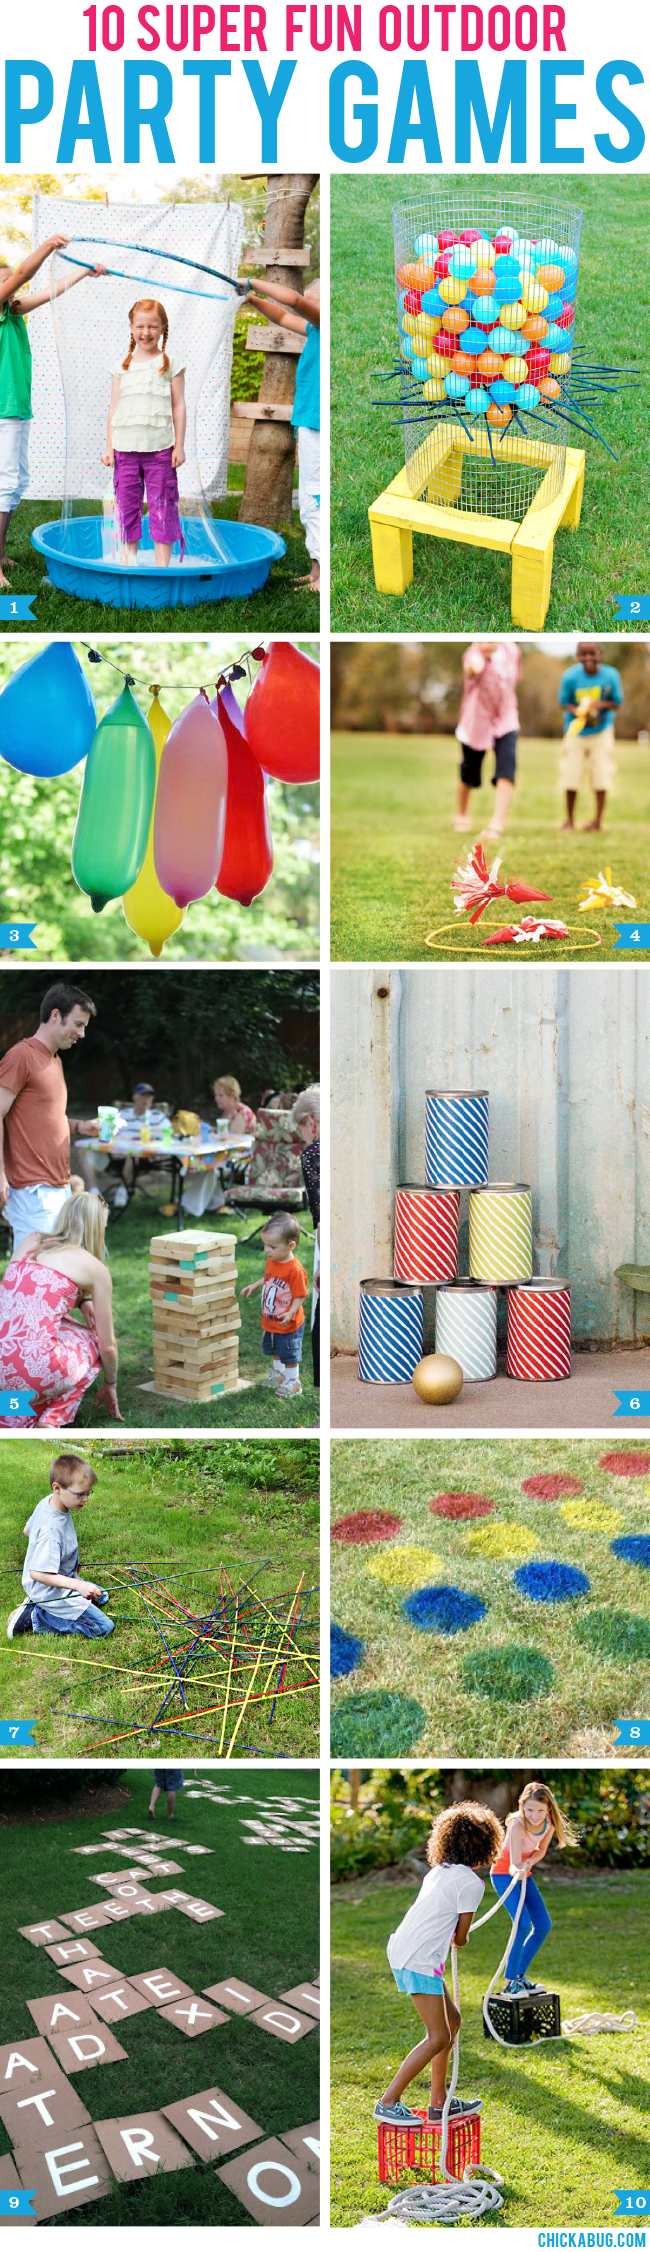 Birthday Fun For Adults : Super fun outdoor party games chickabug